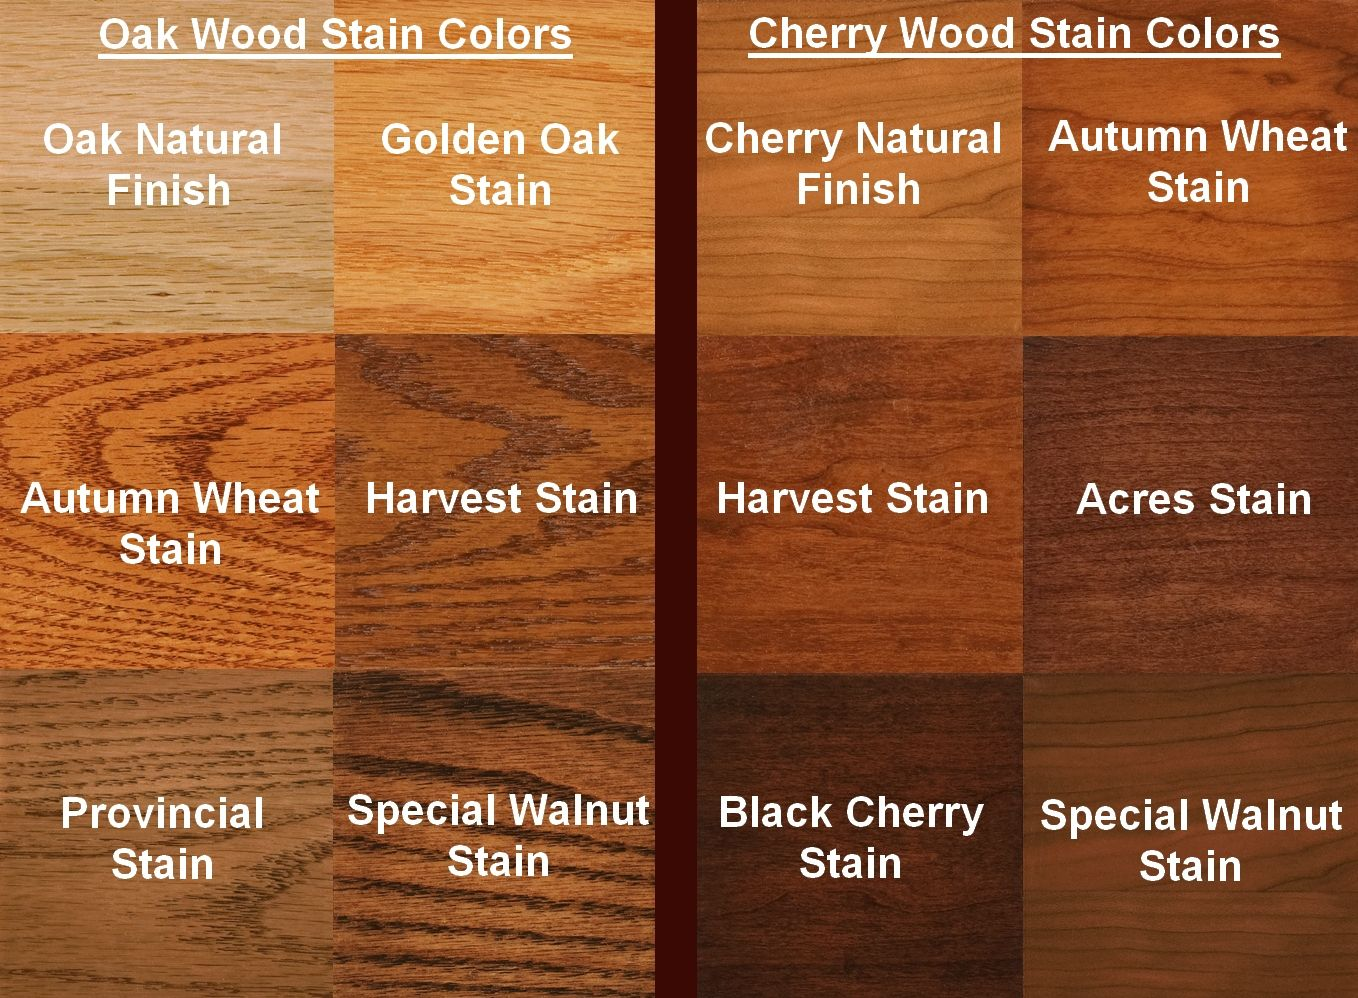 Pin By Ambiance On Home Designer Cherry Wood Stain Staining Wood Wood Stain Colors